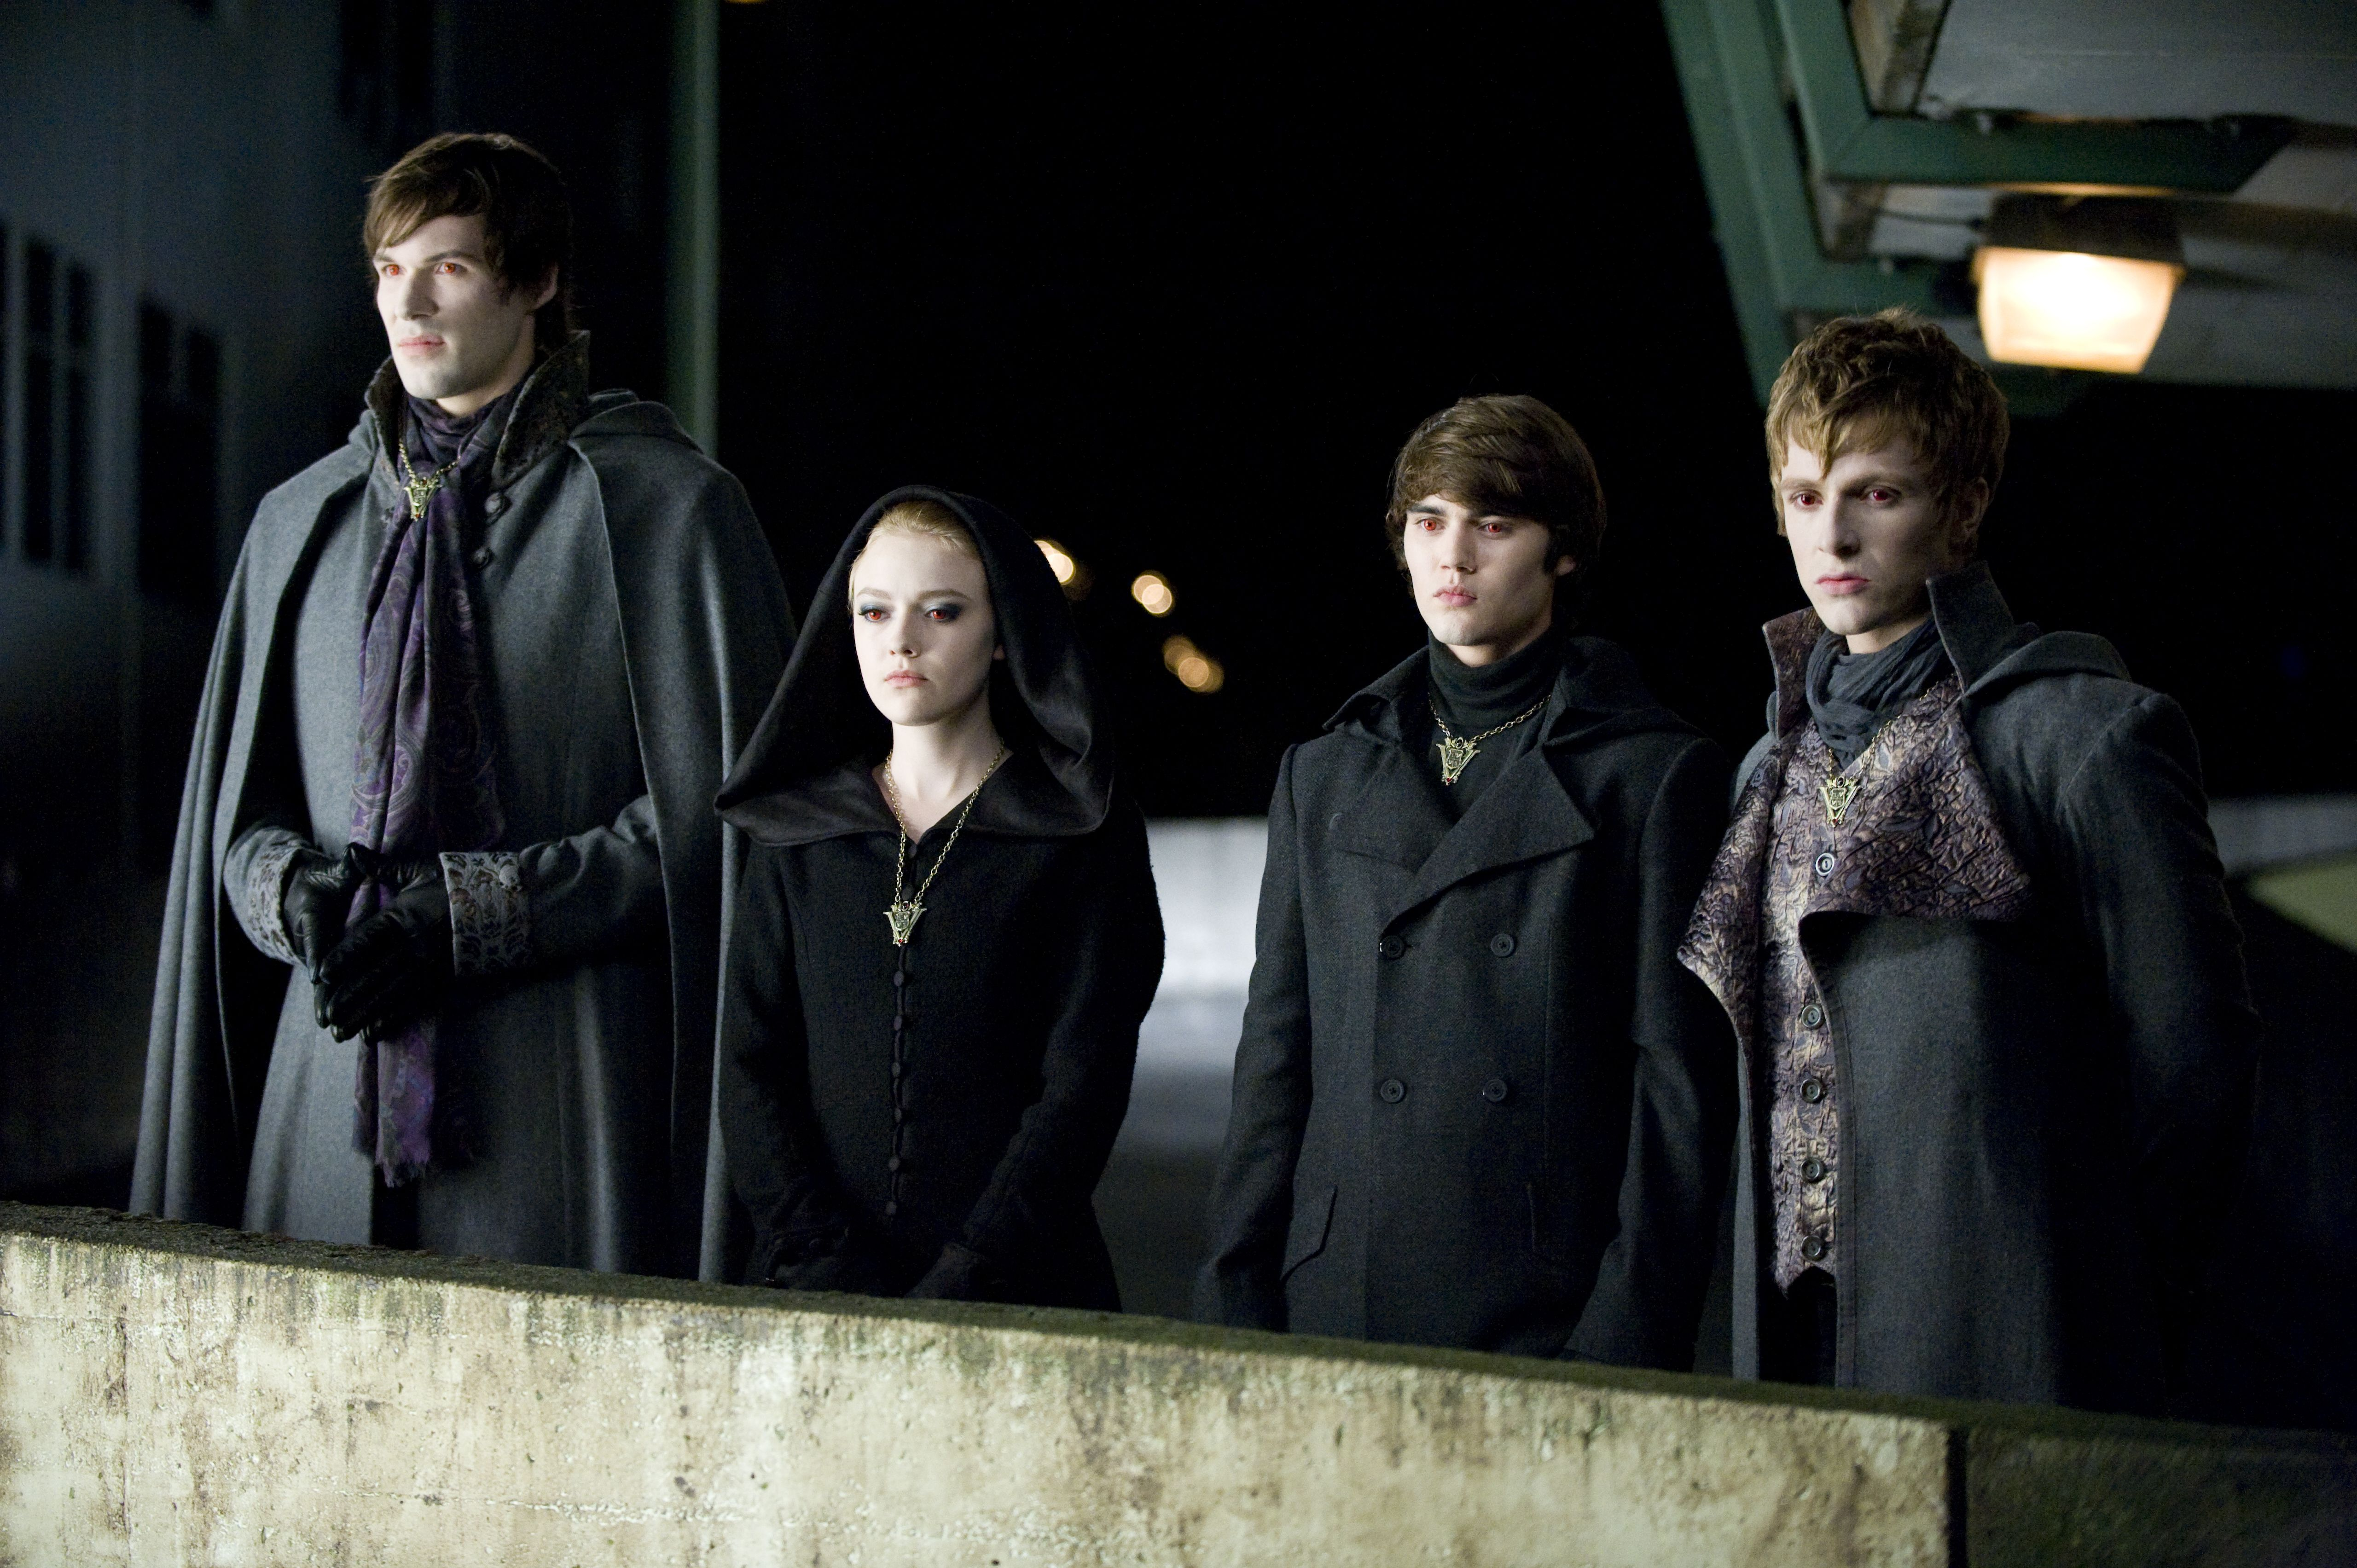 Felix, Jane , Alec and Demetri - The Volturi watch the